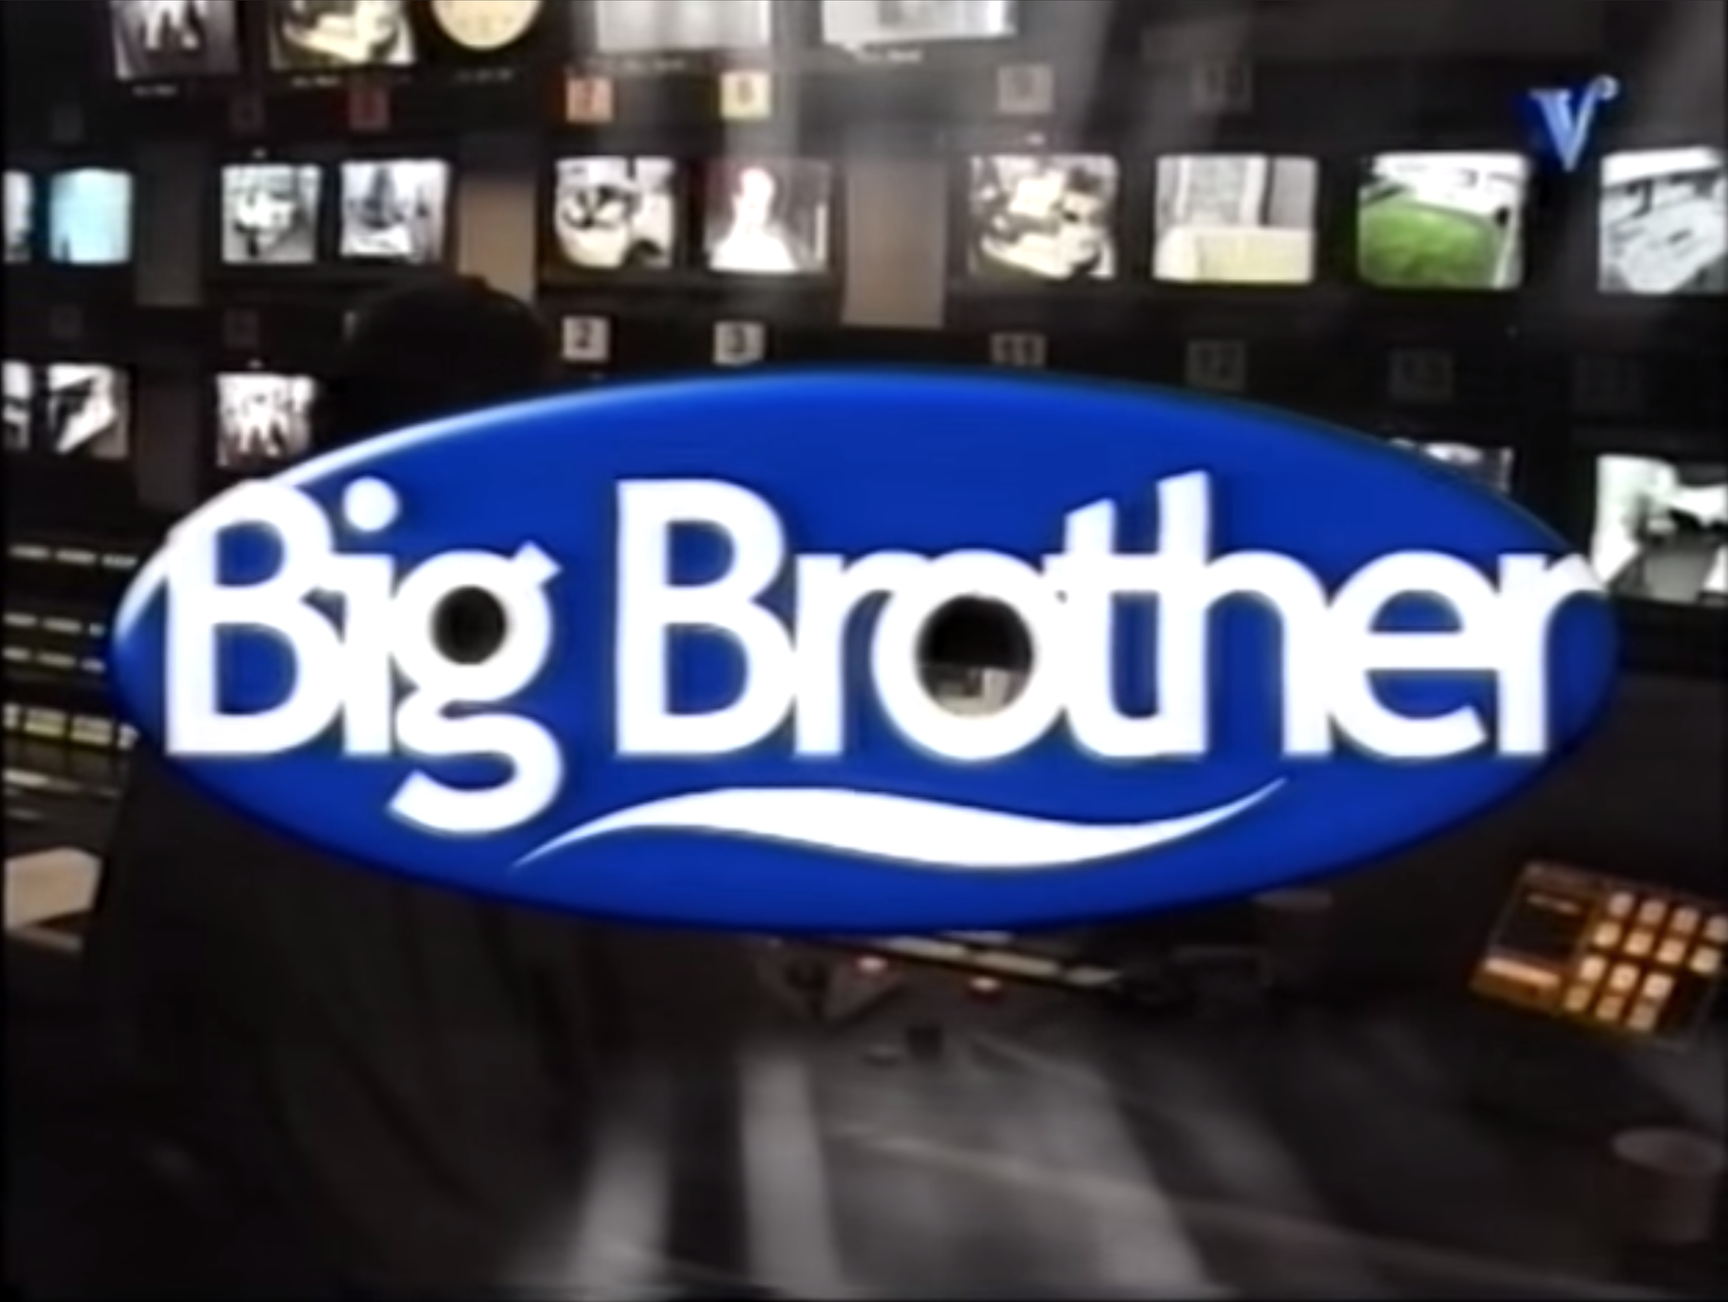 Big Brother Niederlande